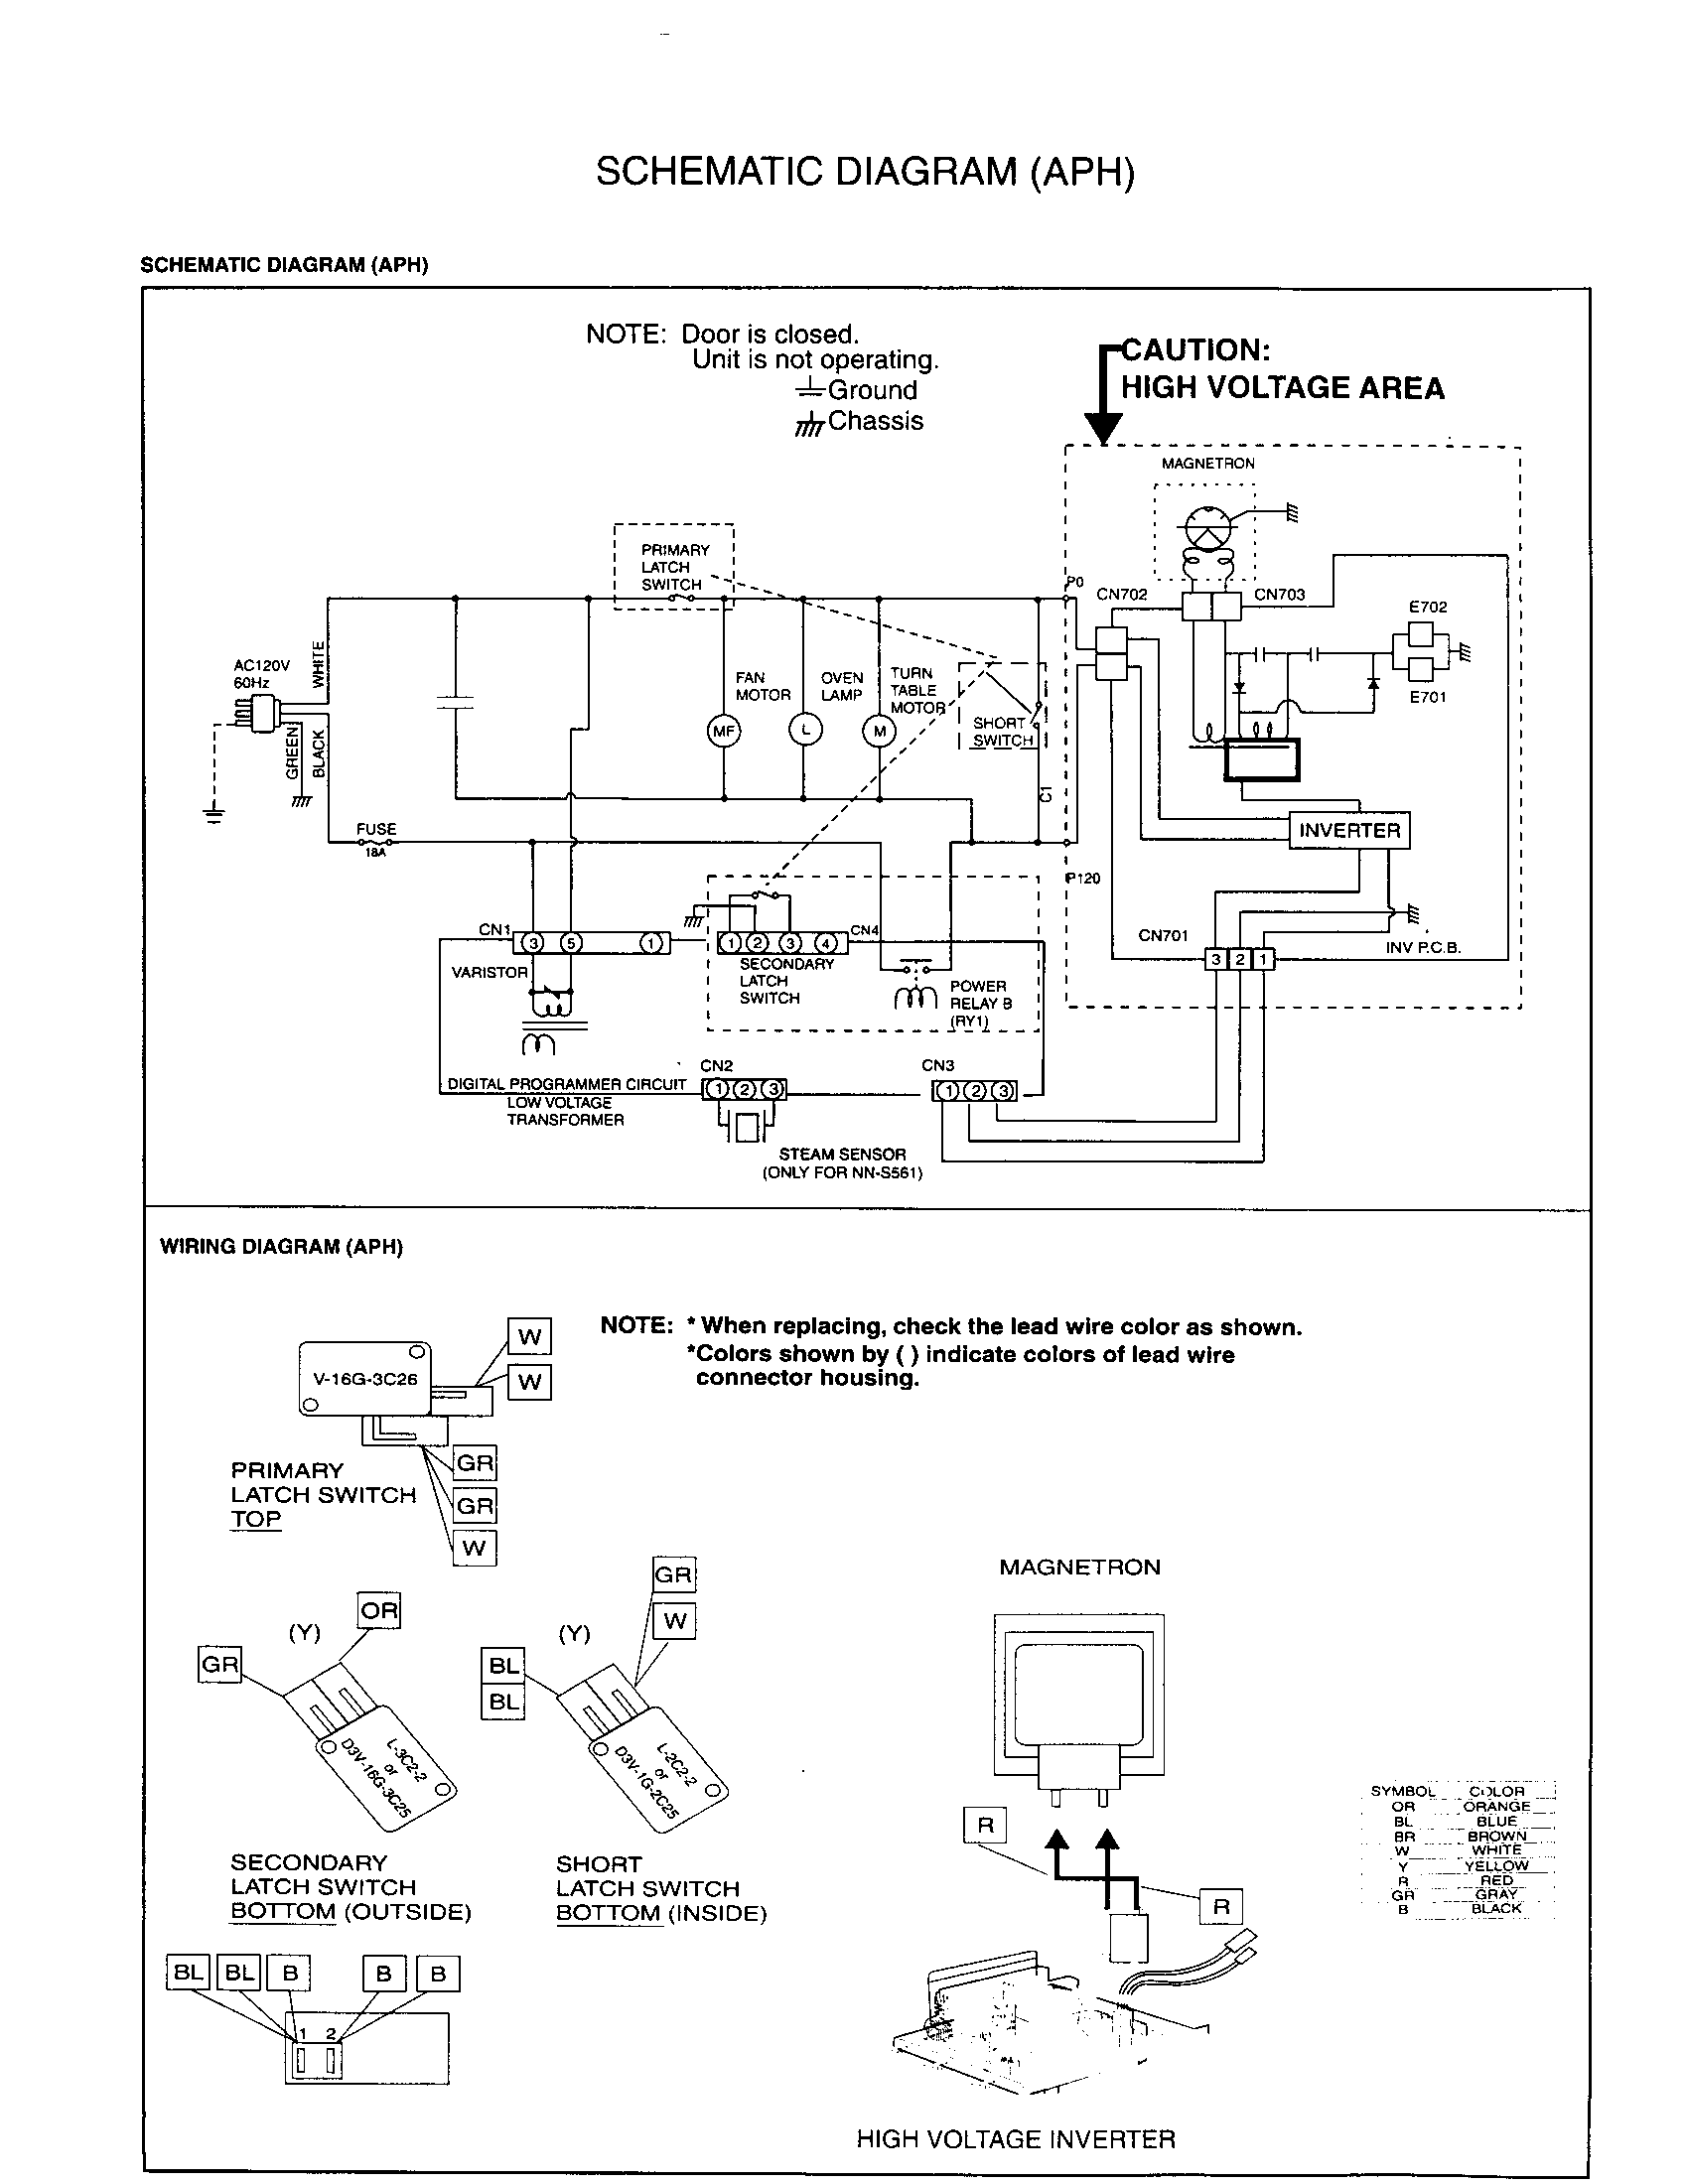 Panasonic Microwave Instruction Manual Diagram, Panasonic